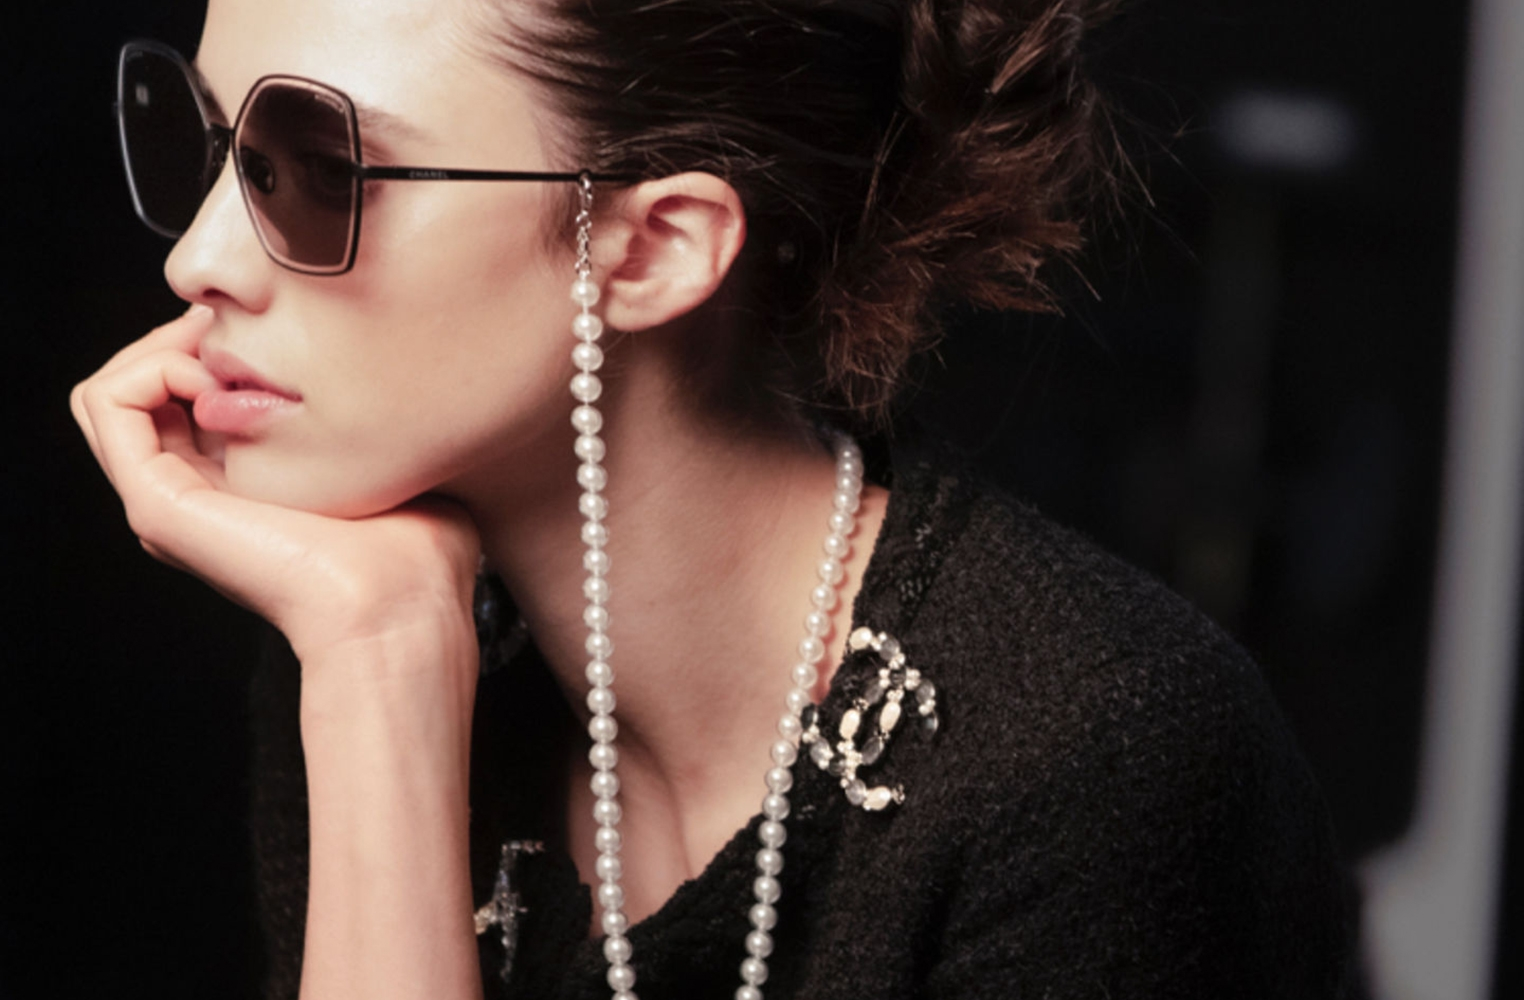 Chanel New Collection - Occhiali - Occhiali da Sole - Chanel Eyewear